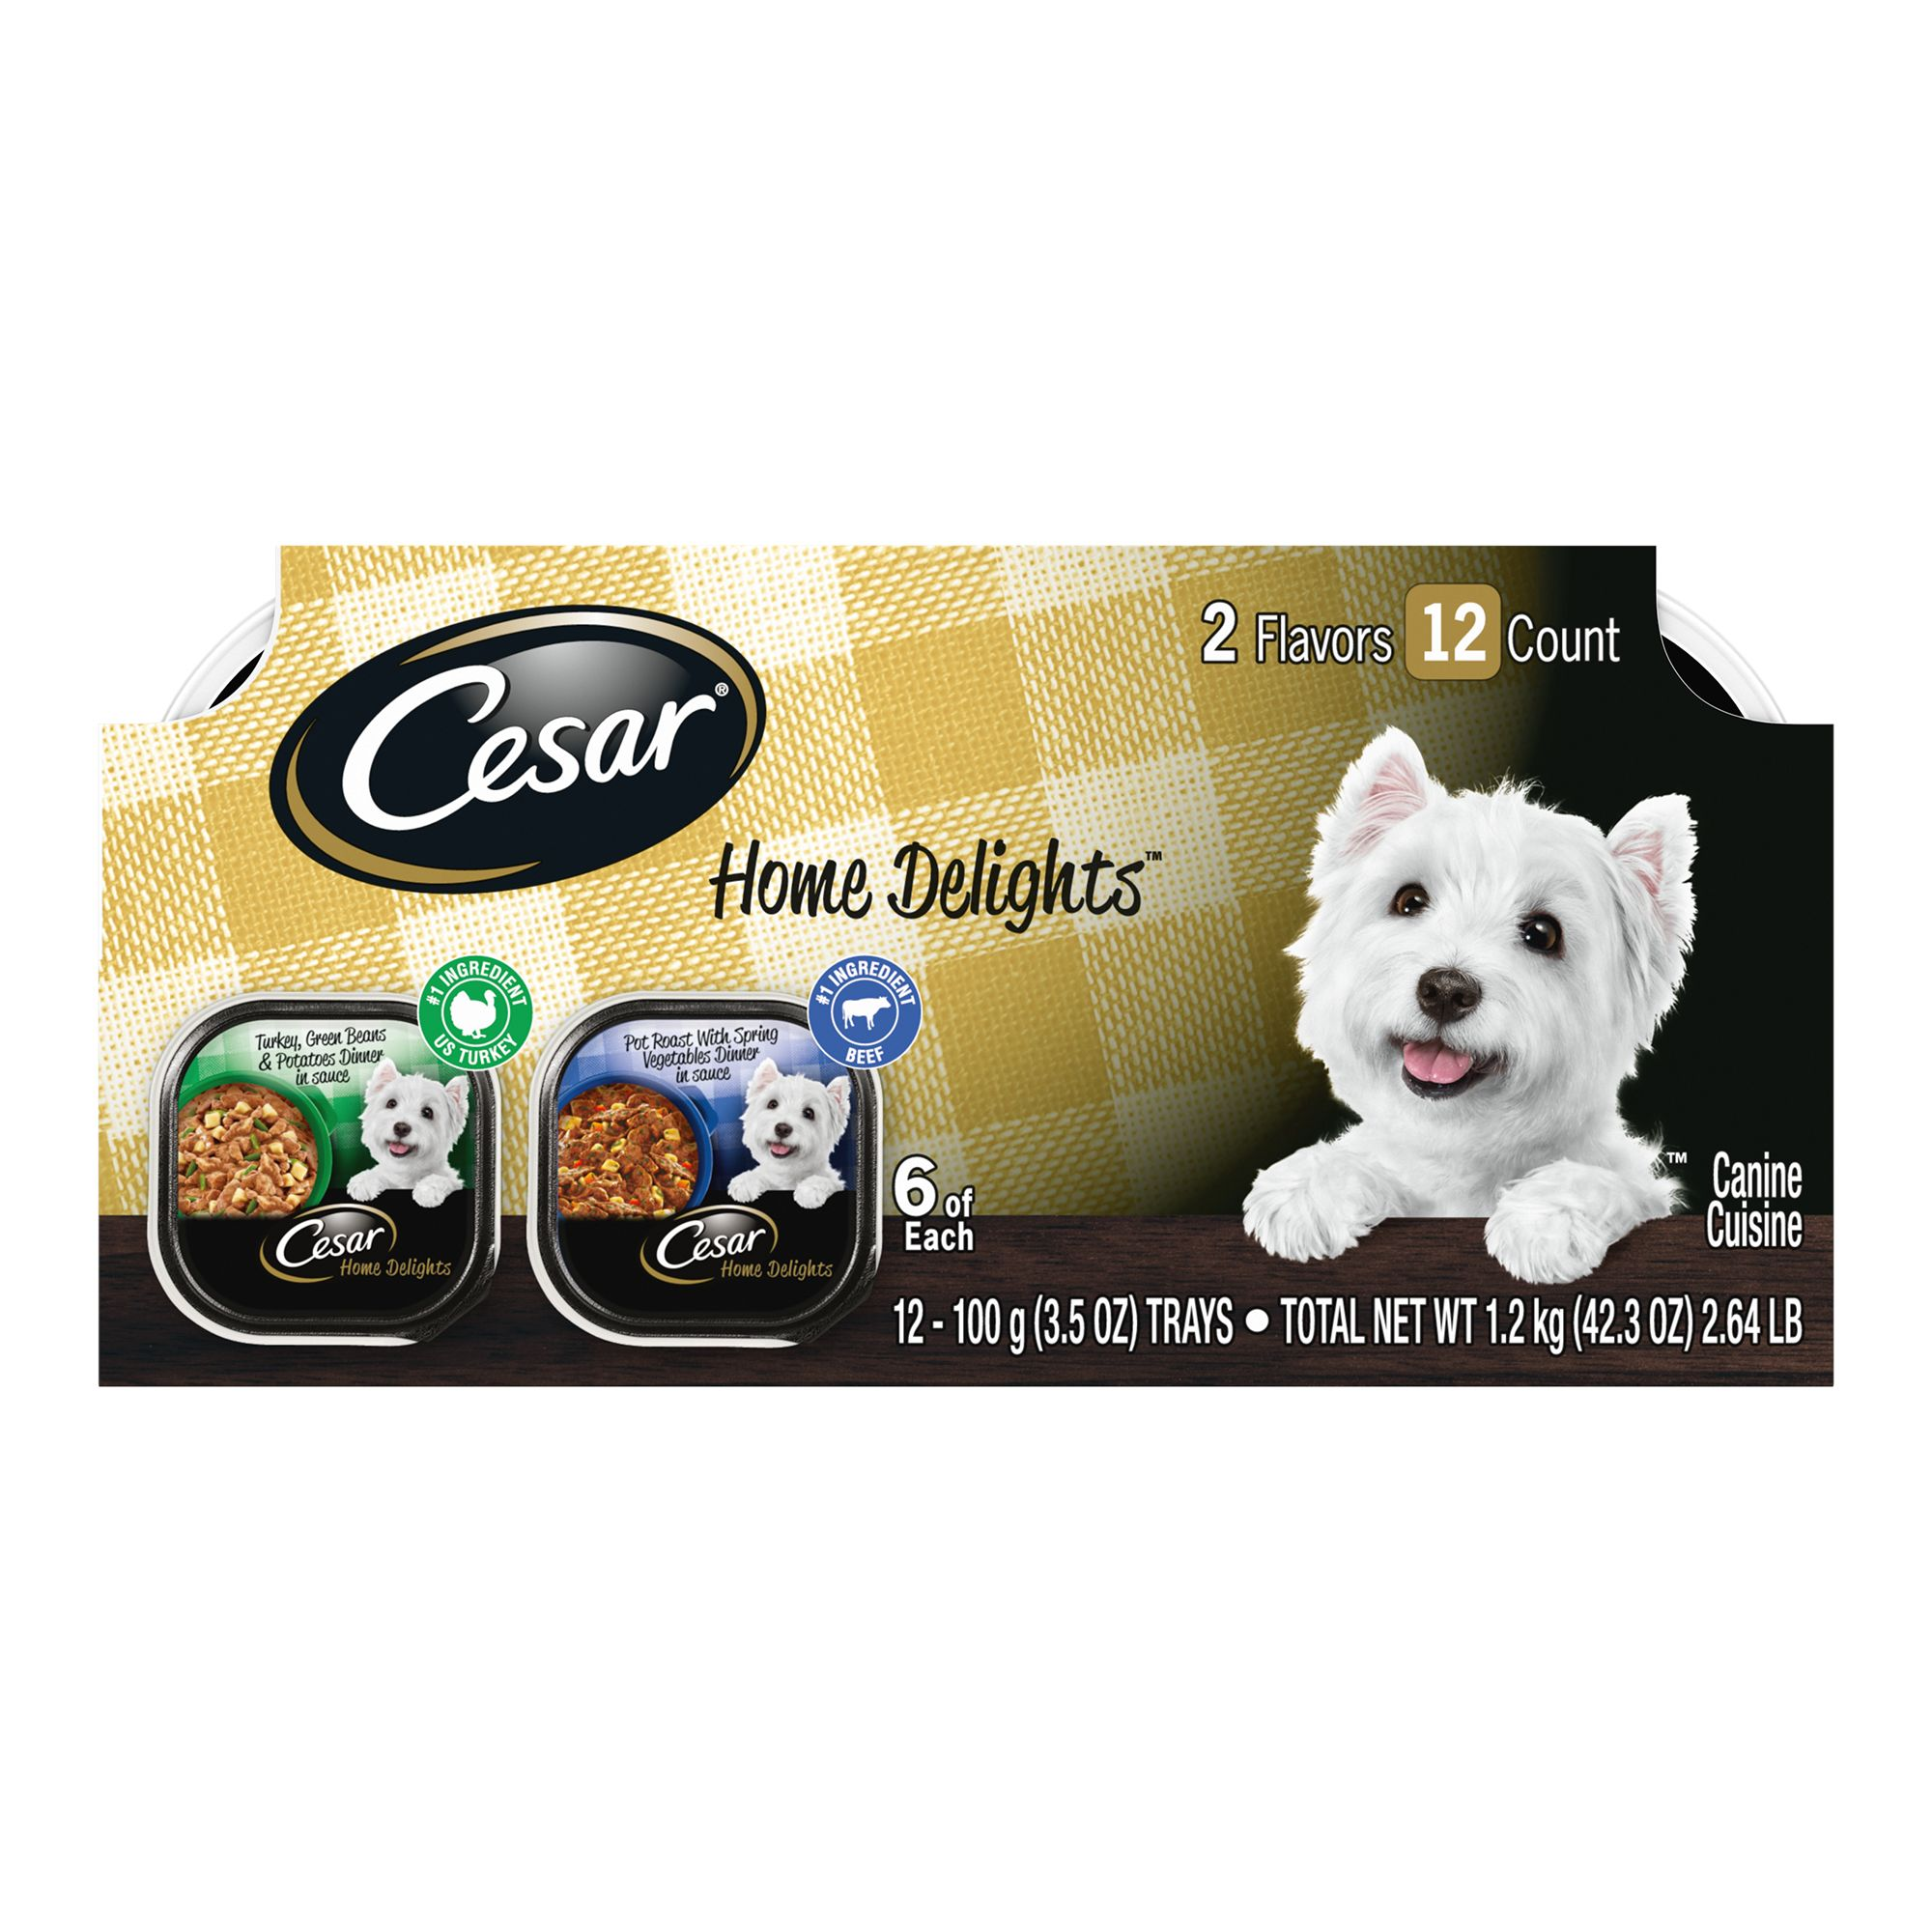 Cesar Home Delights Adult Dog Food Turkey And Pot Roast Variety Pack 12ct Size 3.5 Oz